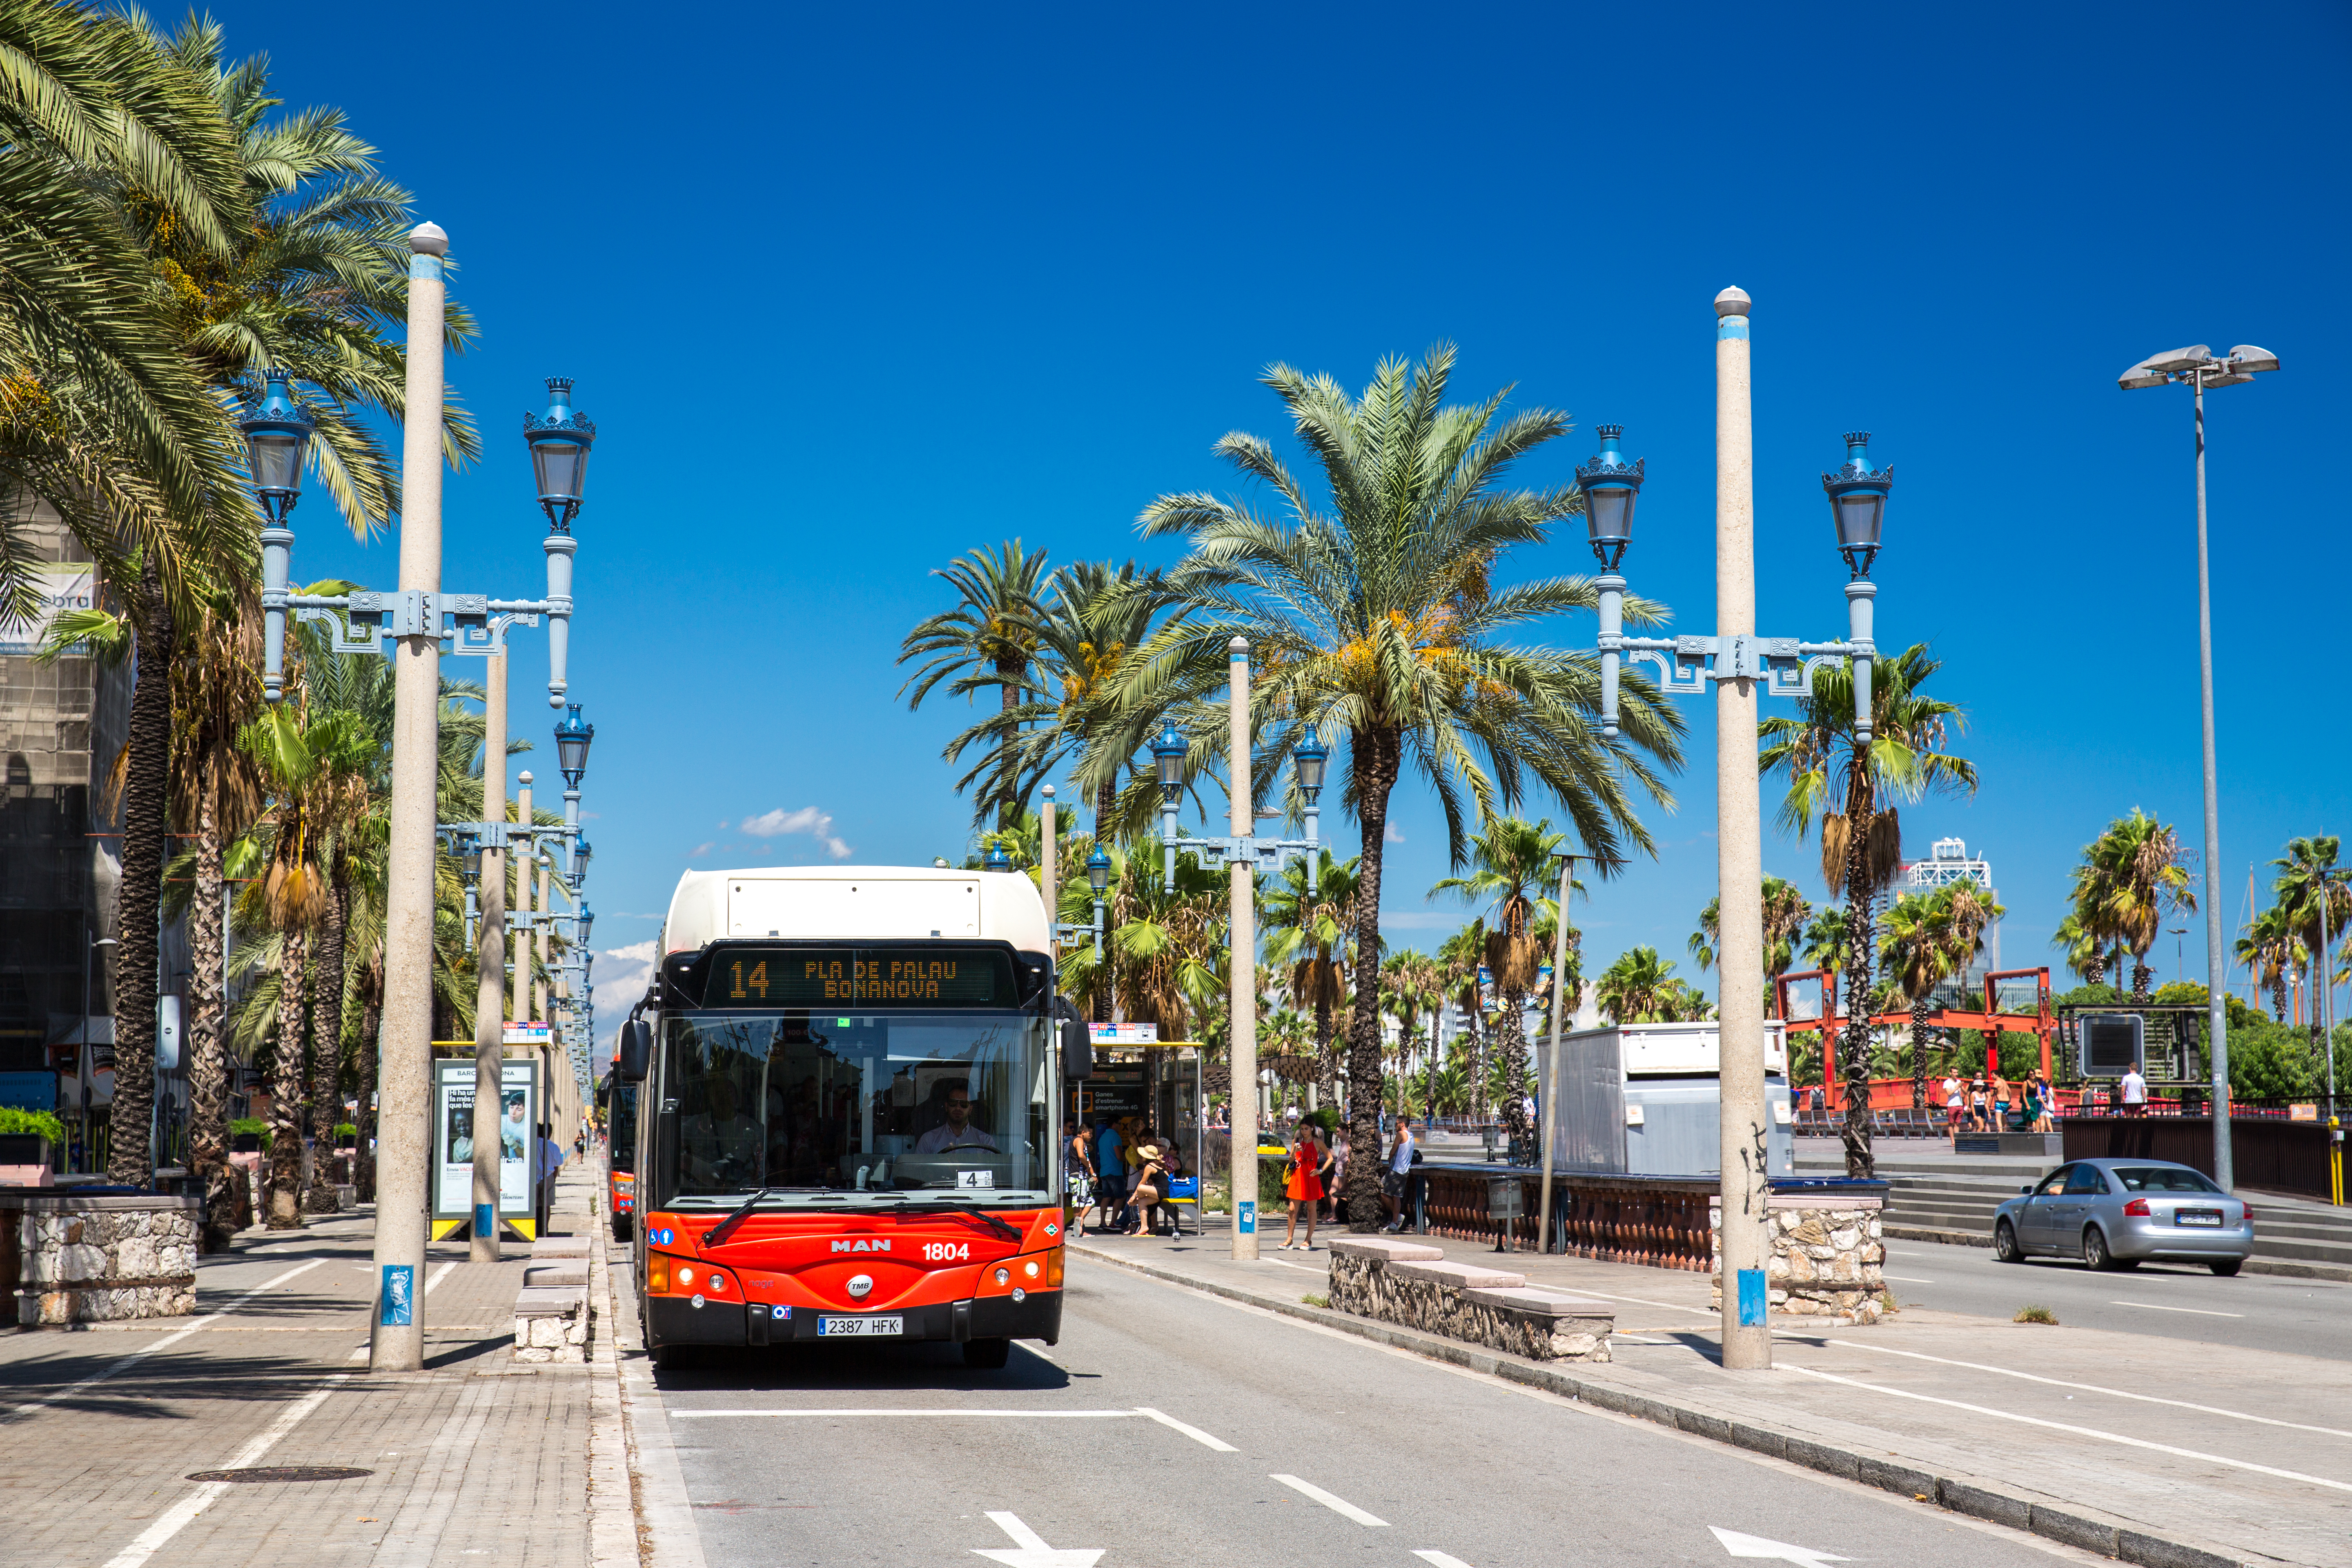 barcelona-tech-city-bus-free-wifi